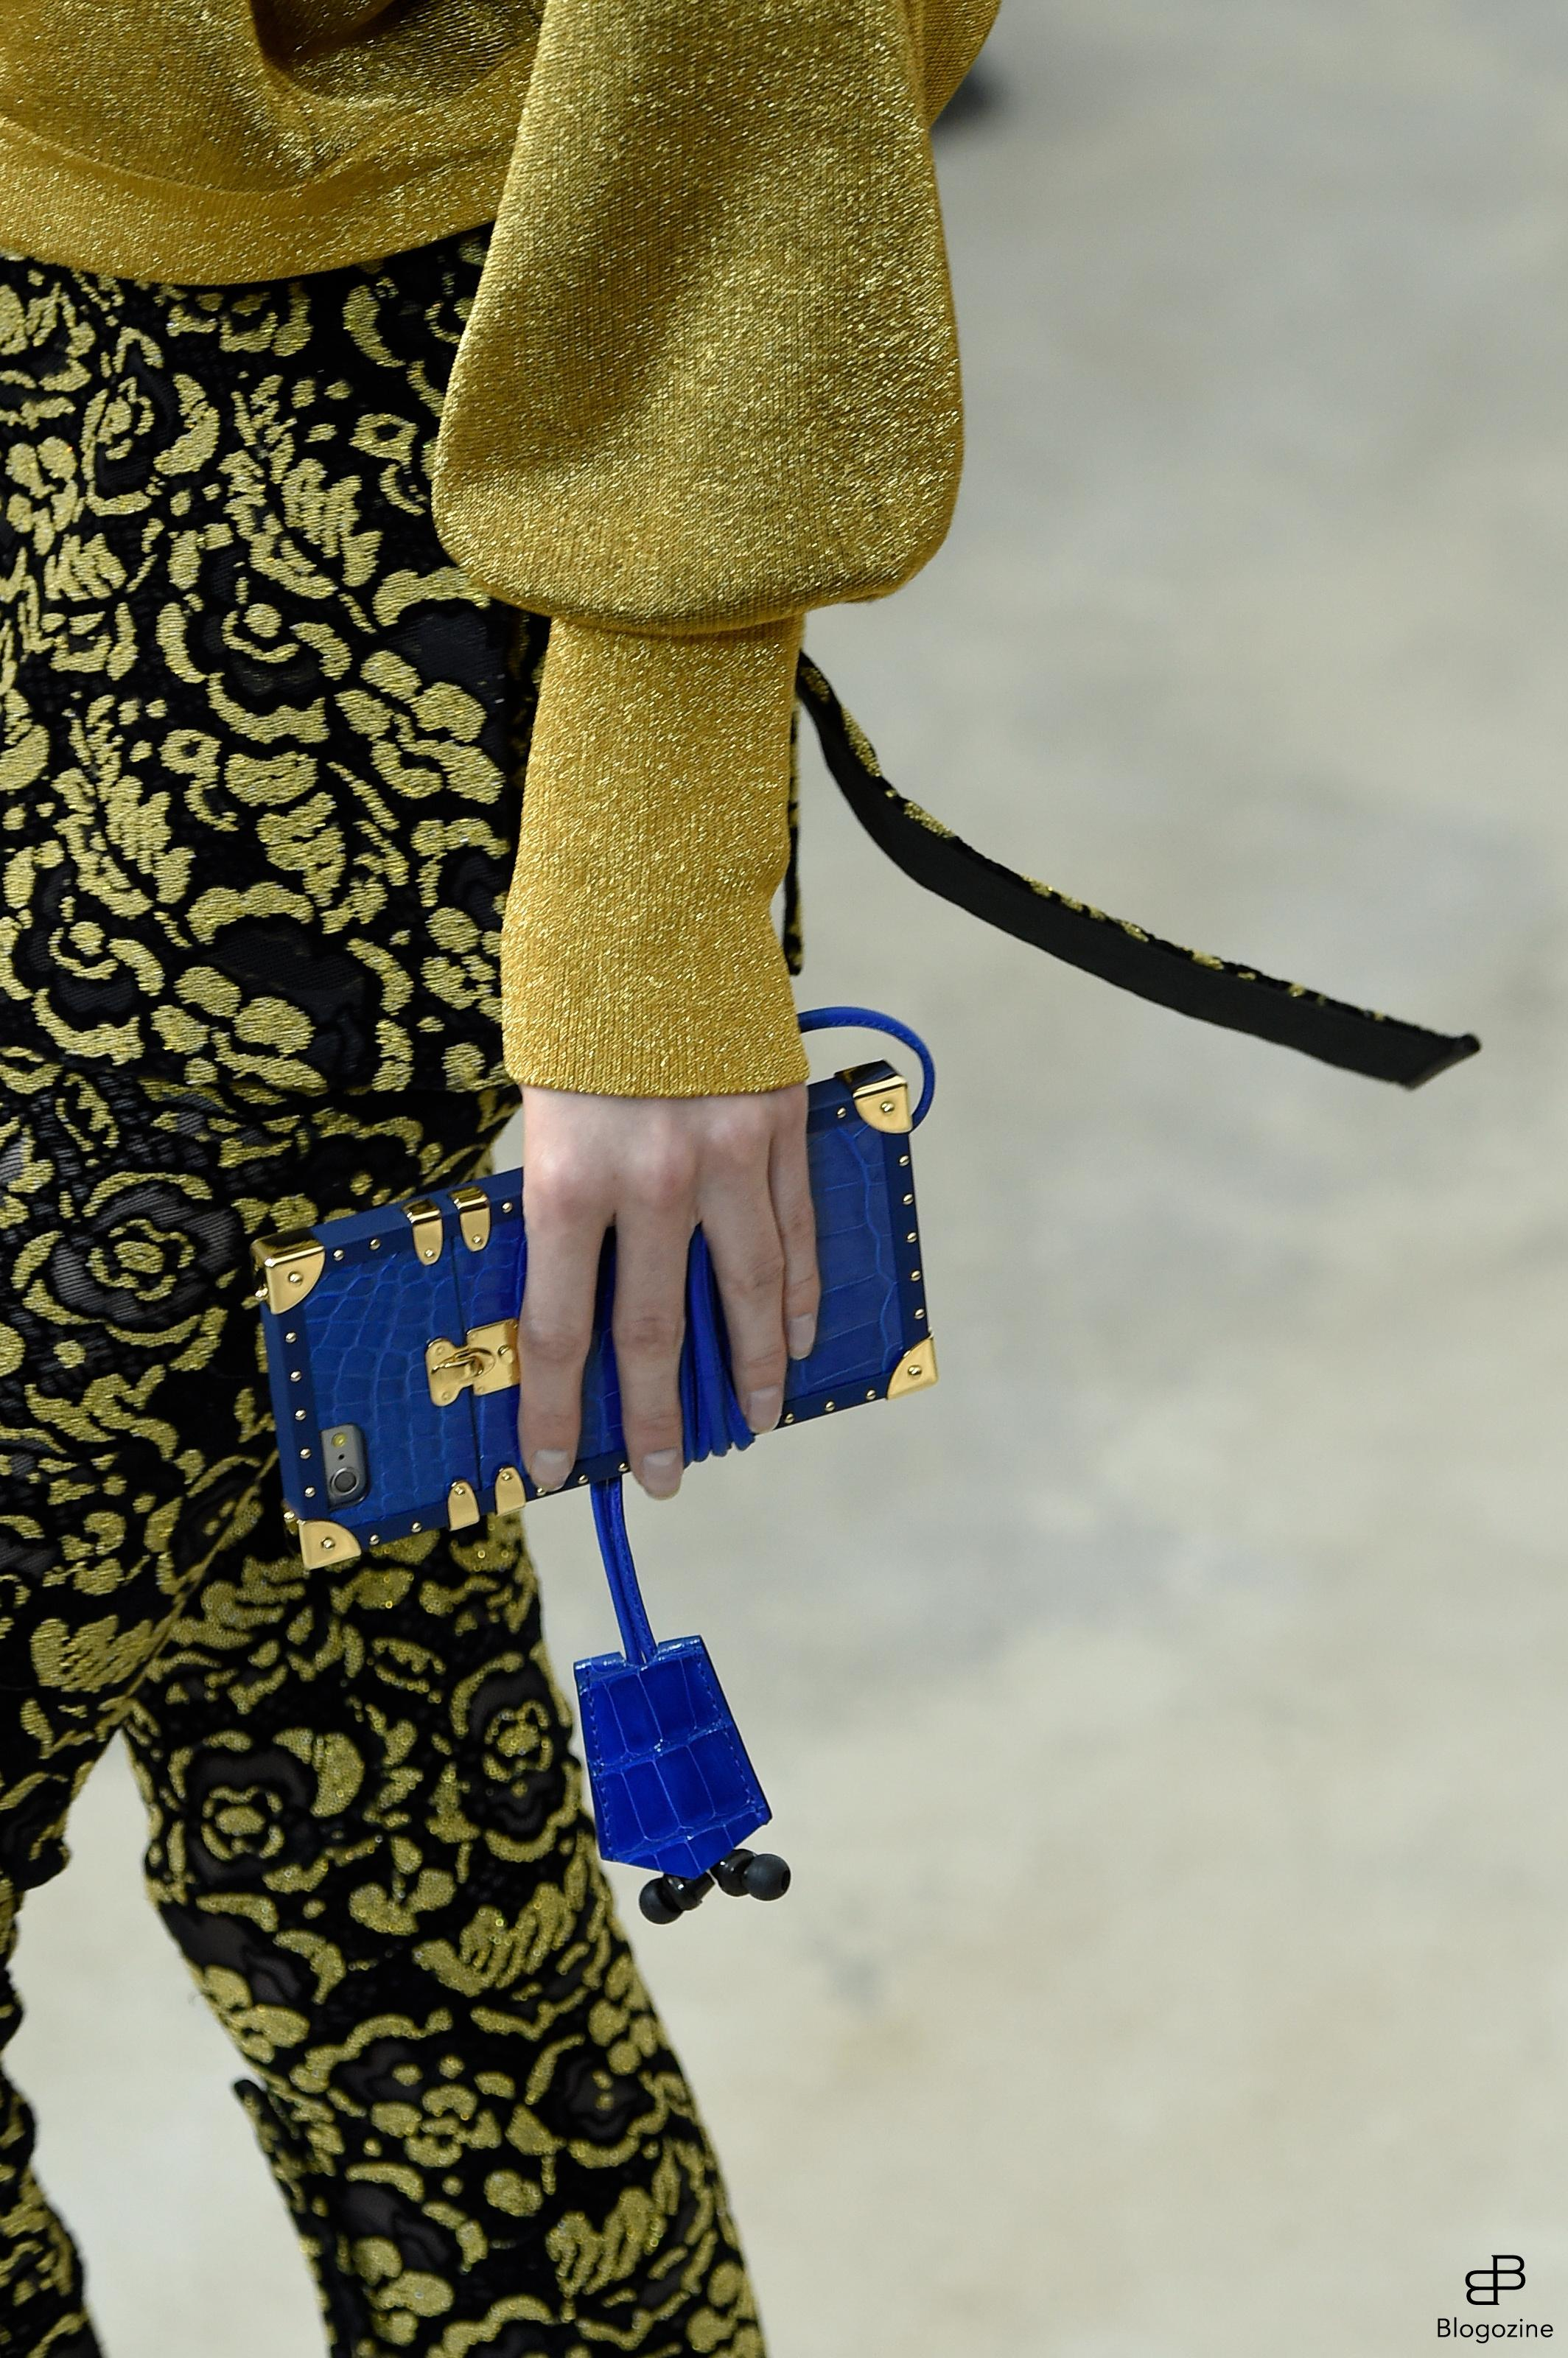 6301347 Details bags and shoes during the Louis Vuitton runway show as a part of Paris Fashion Week Ready to Wear Spring/Summer 2017 on October 4th , 2016 in Paris, France. Photo by Alain Gil Gonzalez/ABACAPRESS.COM COPYRIGHT STELLA PICTURES